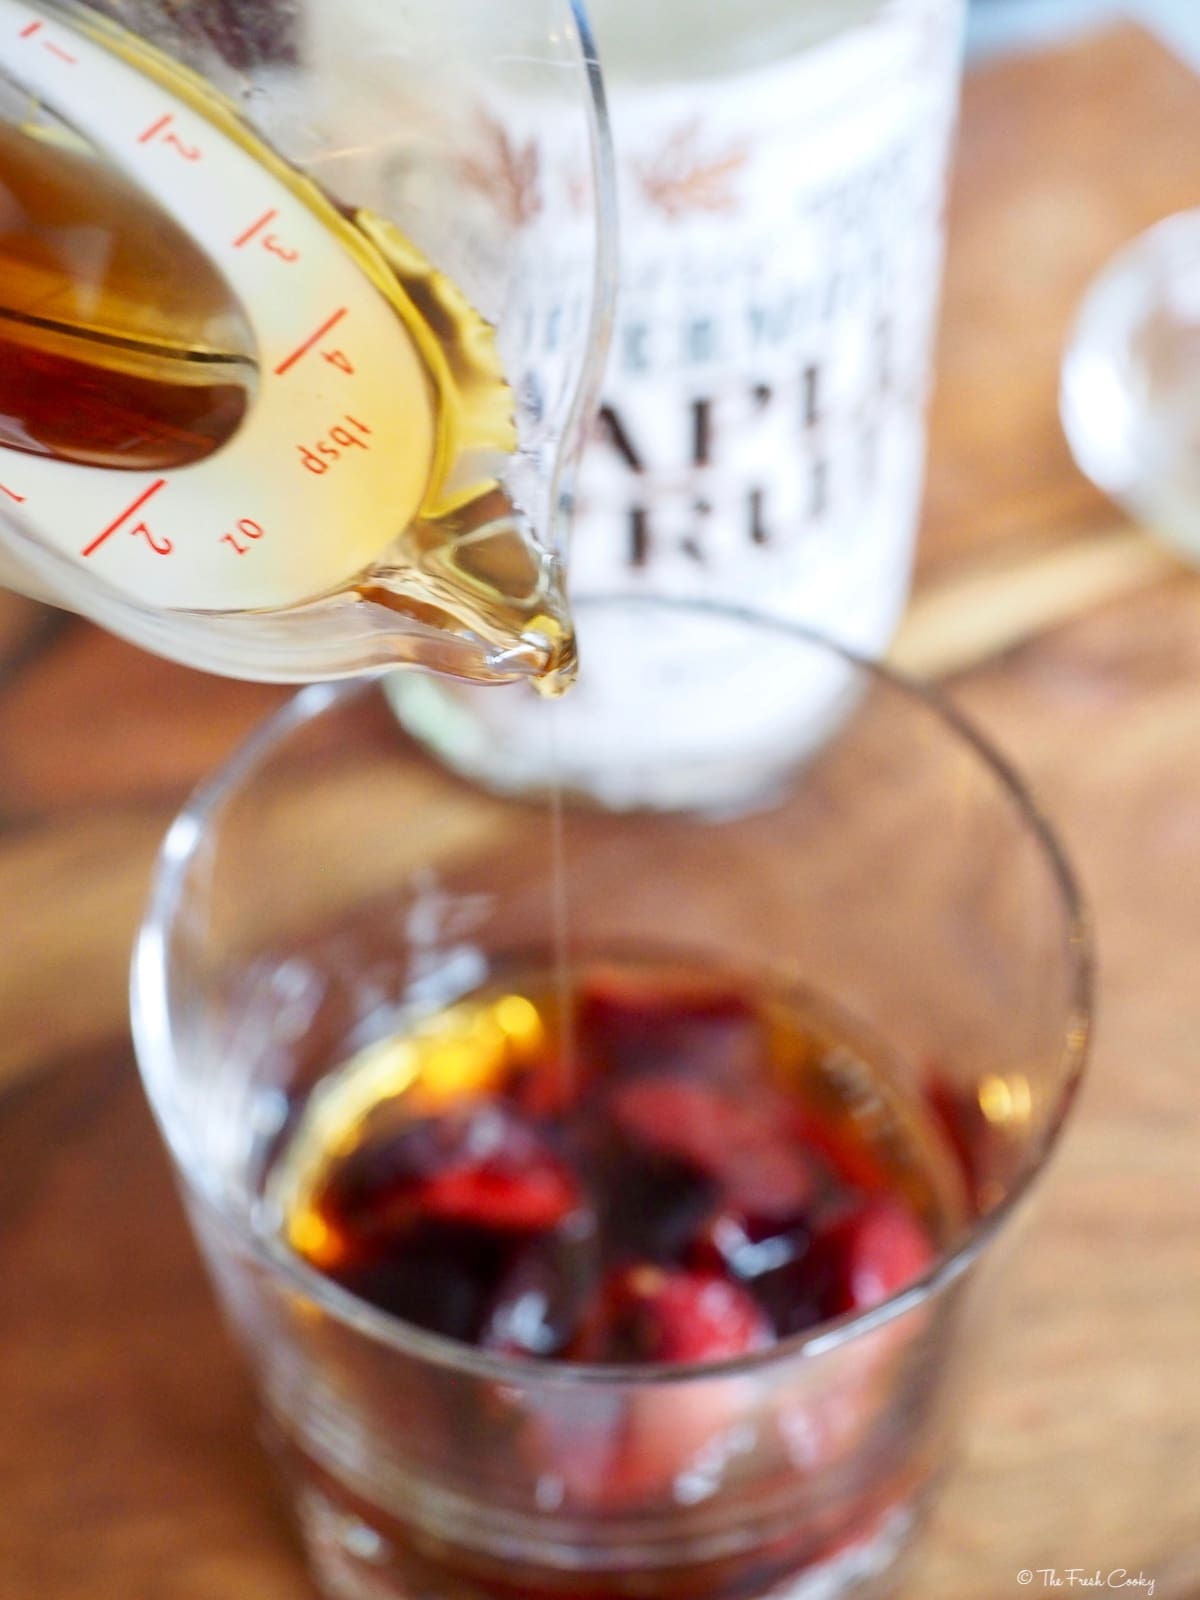 Adding maple syrup to cherry bomb cocktail.